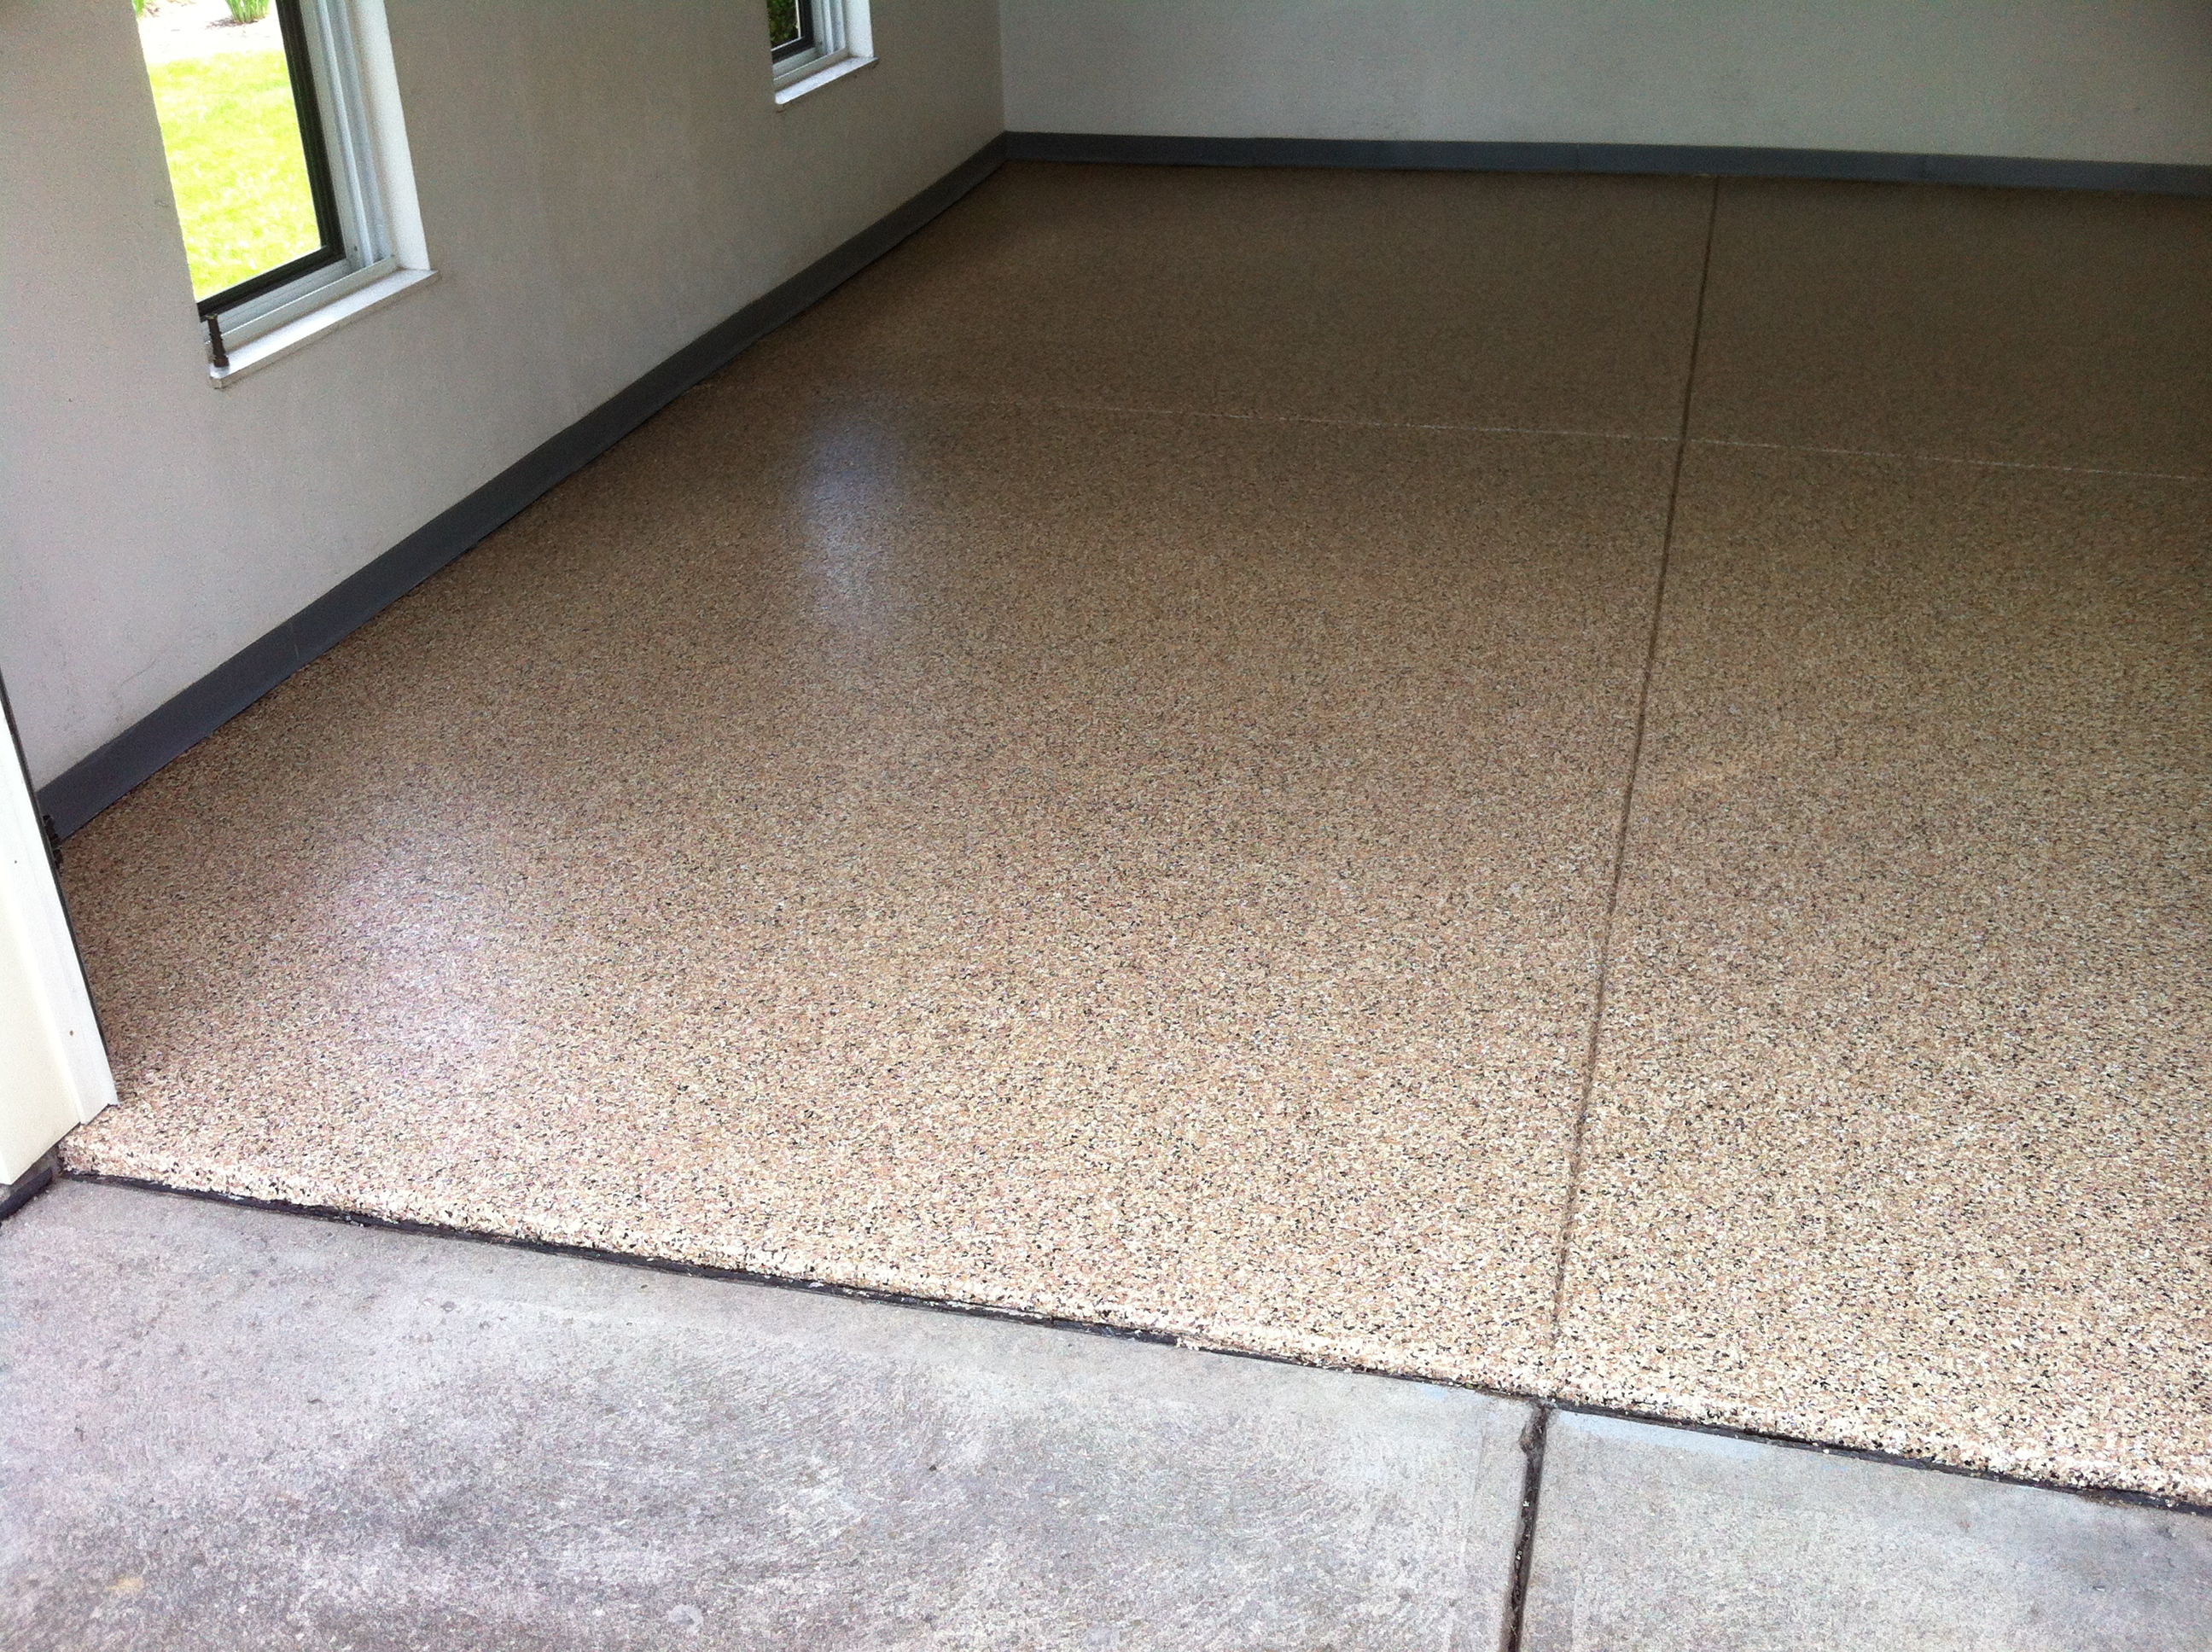 Sarasota florida garage floor coating company our service area includes sarasota tampa fl st petersburg port charlotte arcadia cape coral dailygadgetfo Image collections